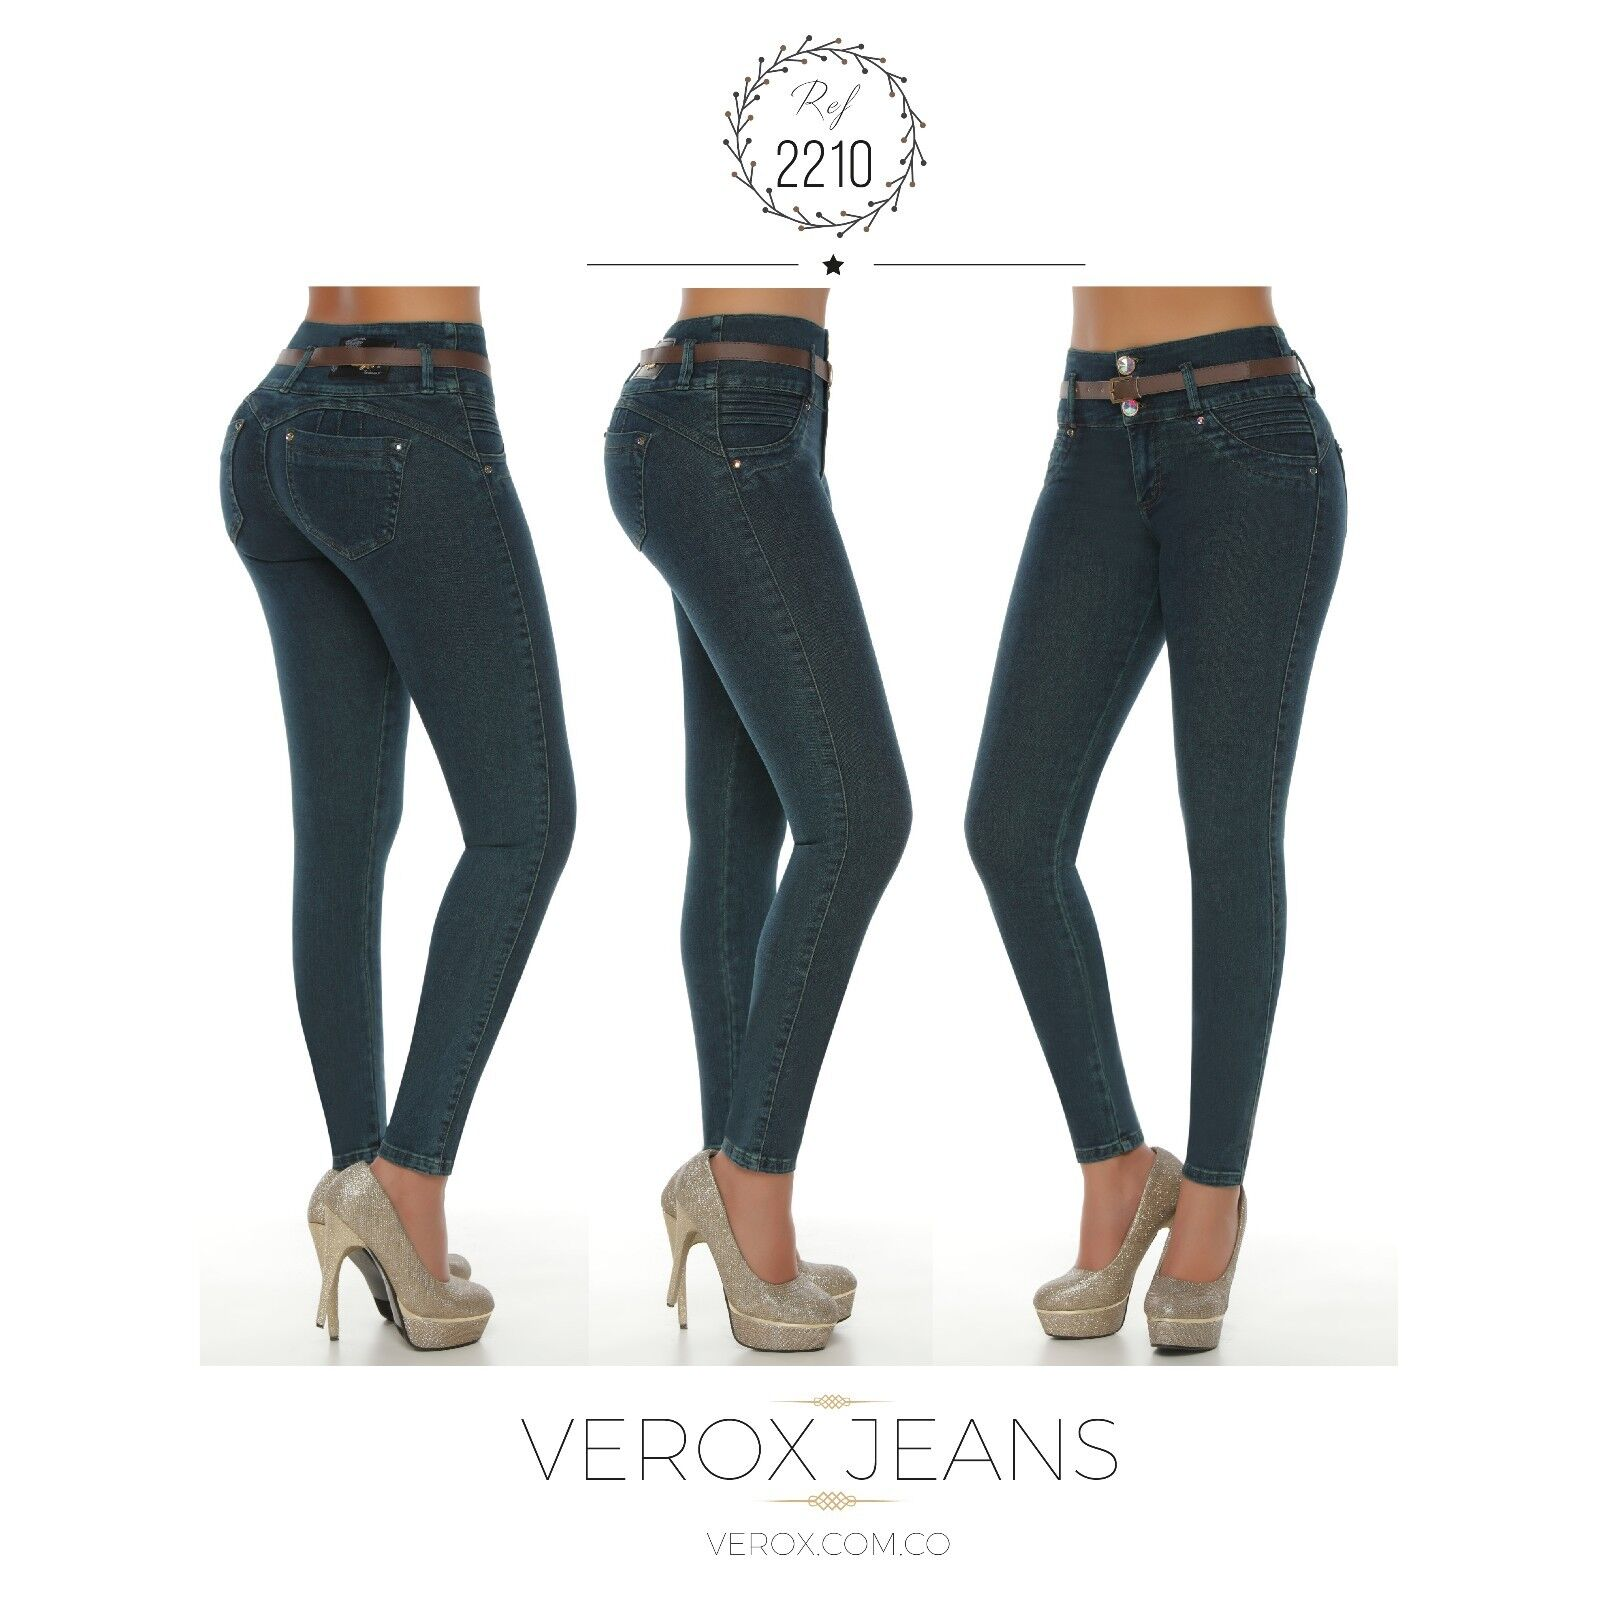 Verox Jeans colombianos butt lifter fajas colombianas jeans levanta cola 2210